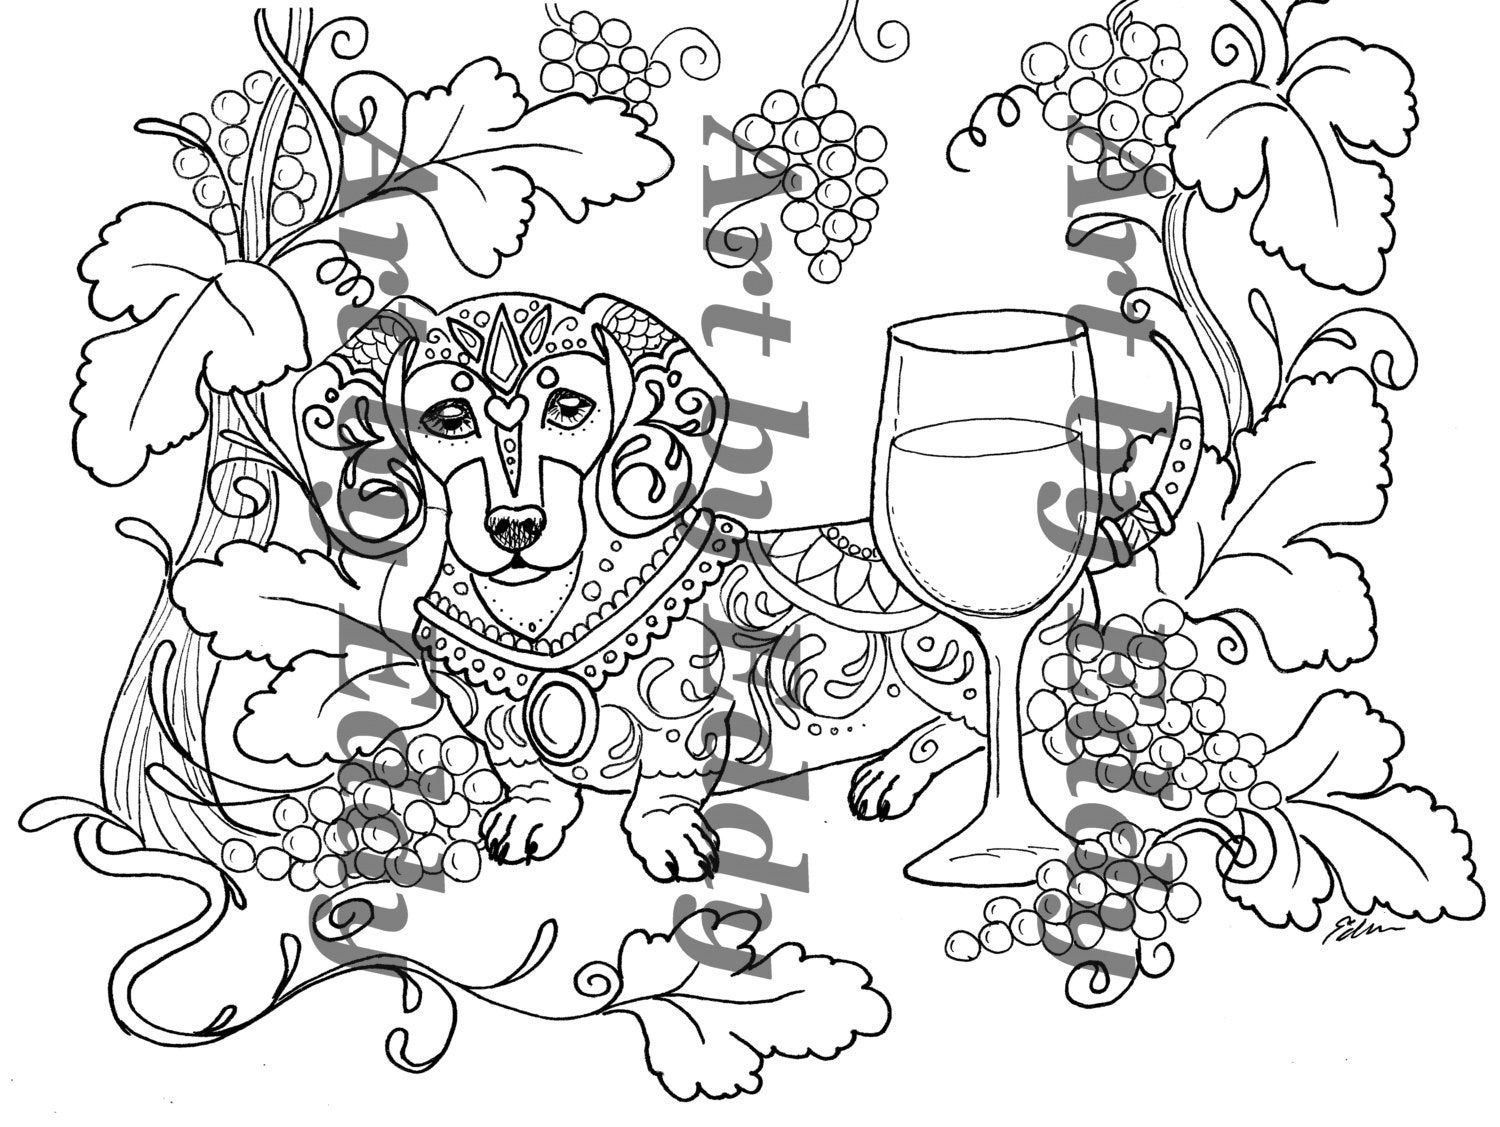 daschunds coloring pages   Art of Dachshund Single Coloring Page Weenies & Wine